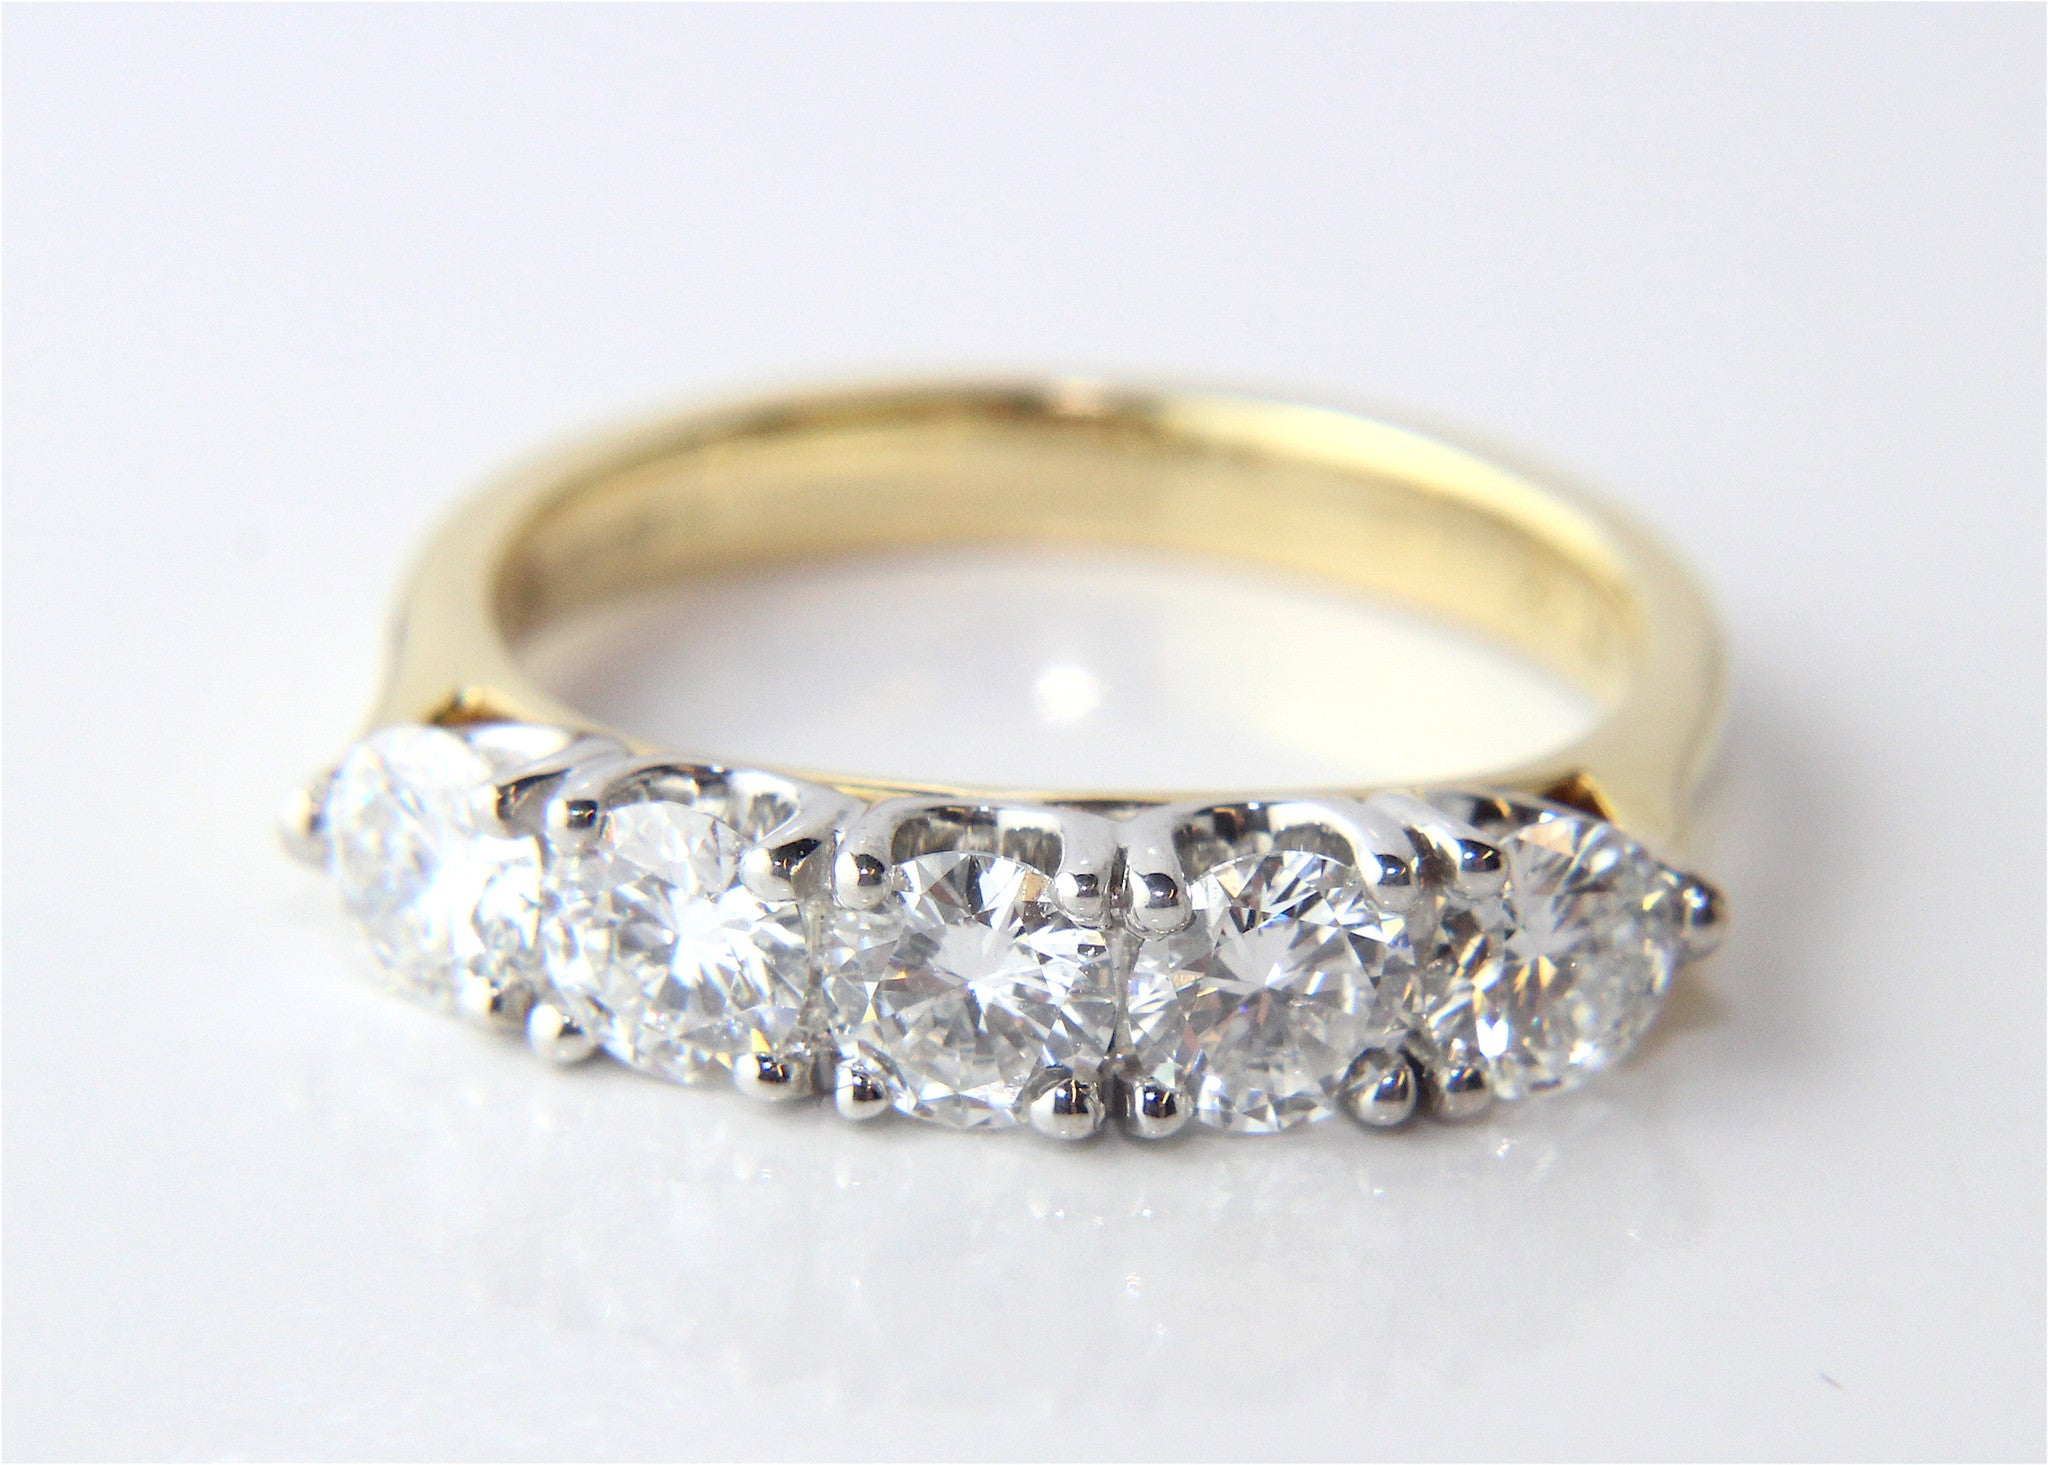 ring bands cut image wedding carat stone the finnies princess jewellers rings band platium diamond engagement eternity